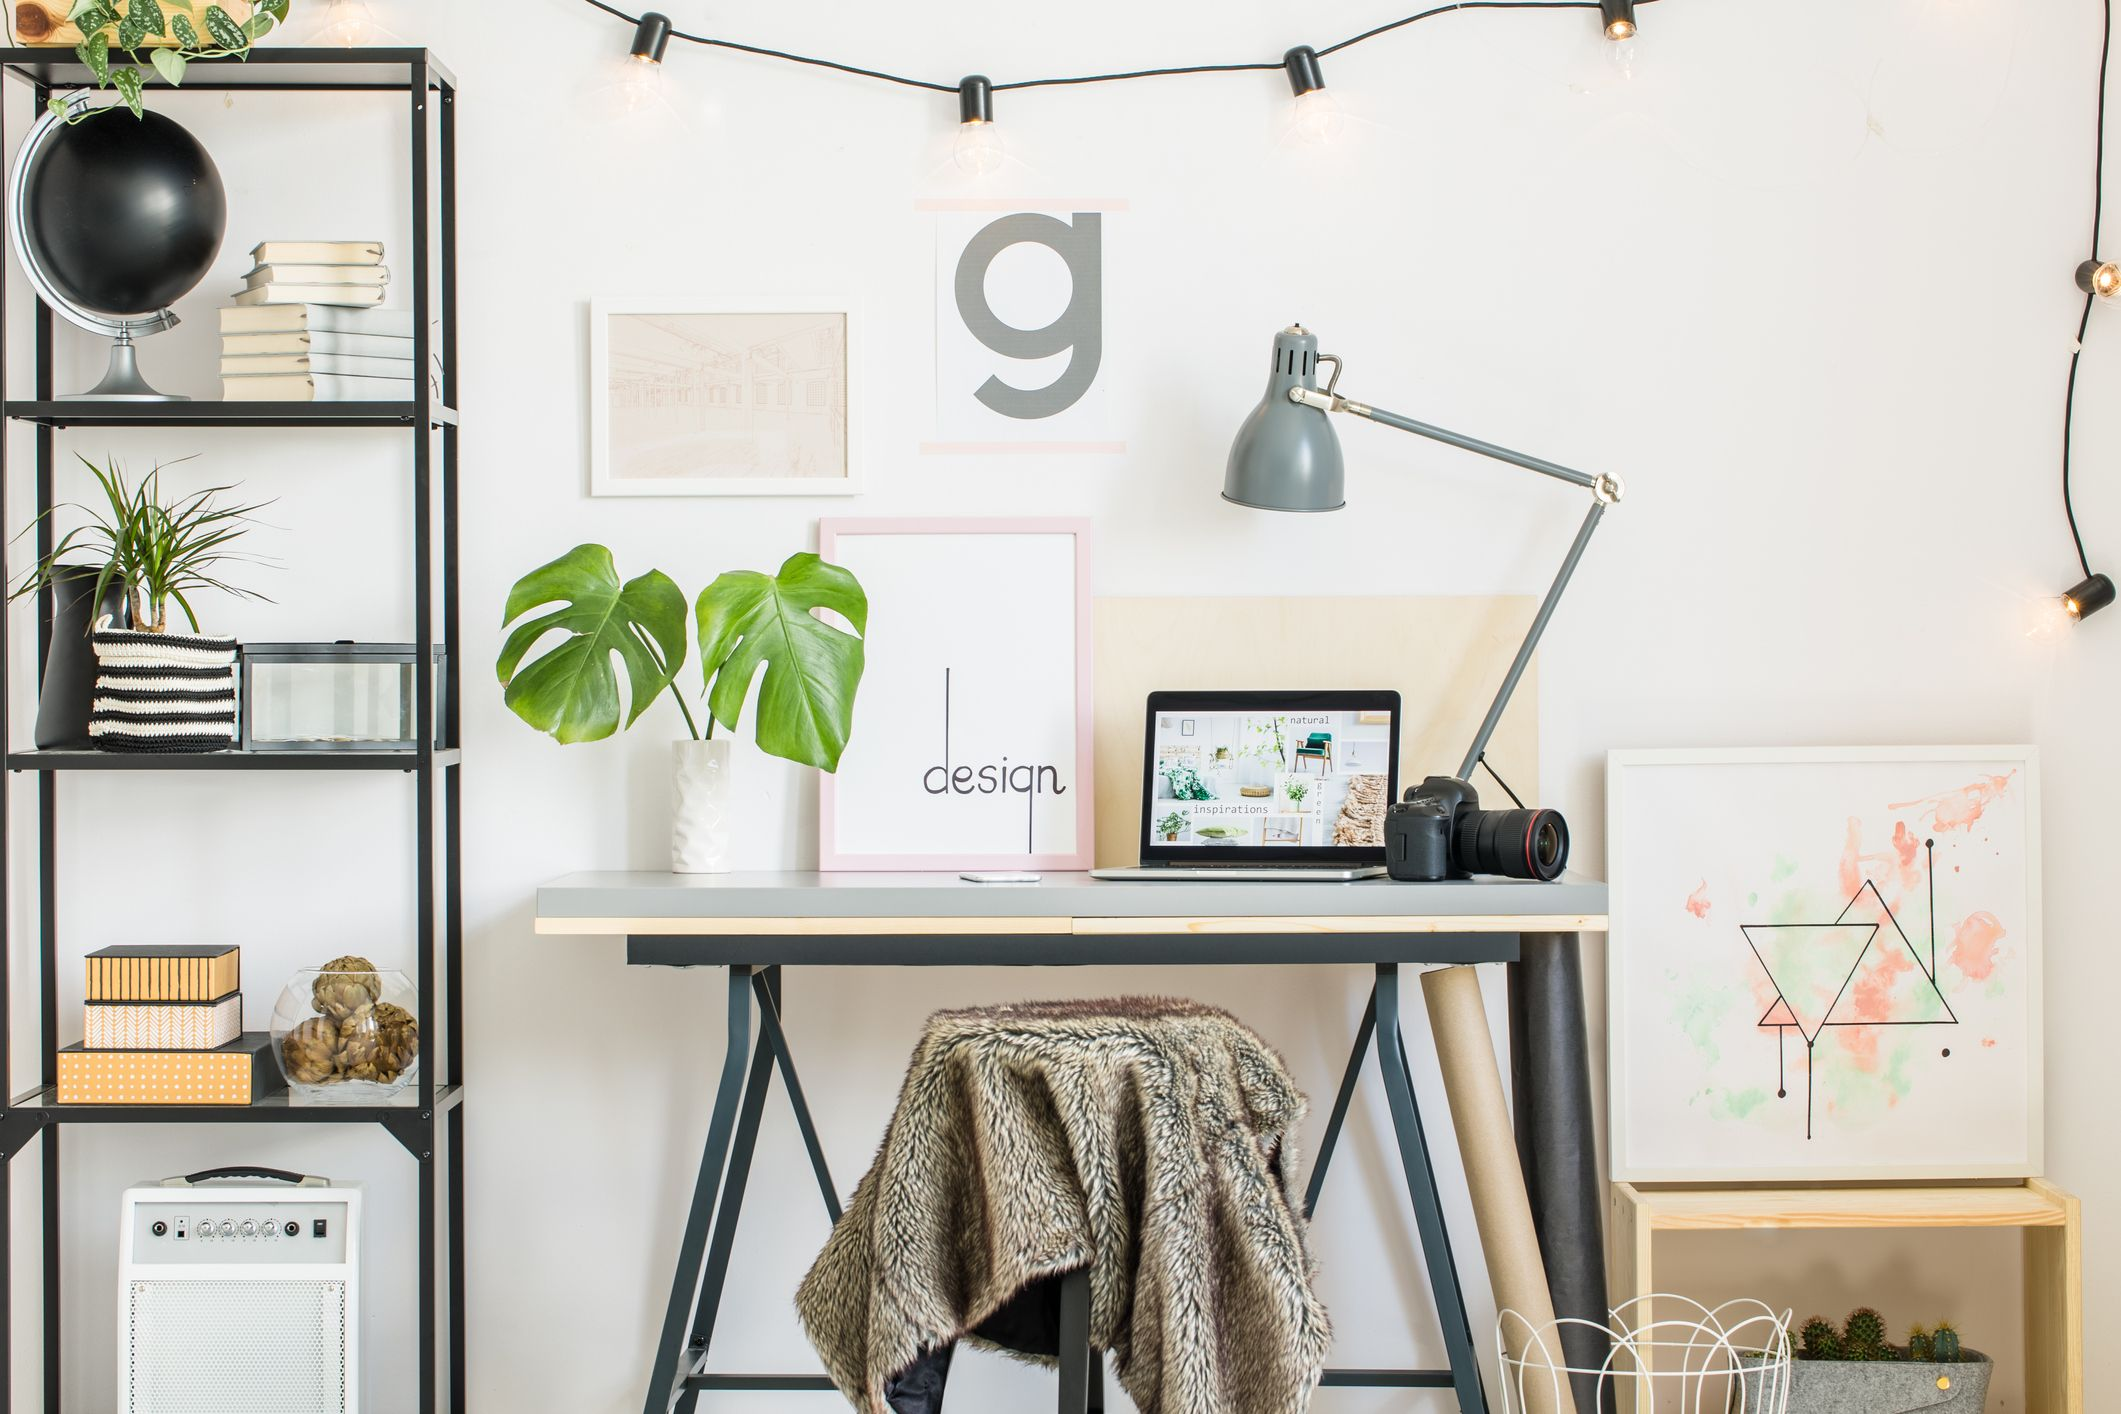 Home Office Wall Art. Home Office Design Concept Wall Art